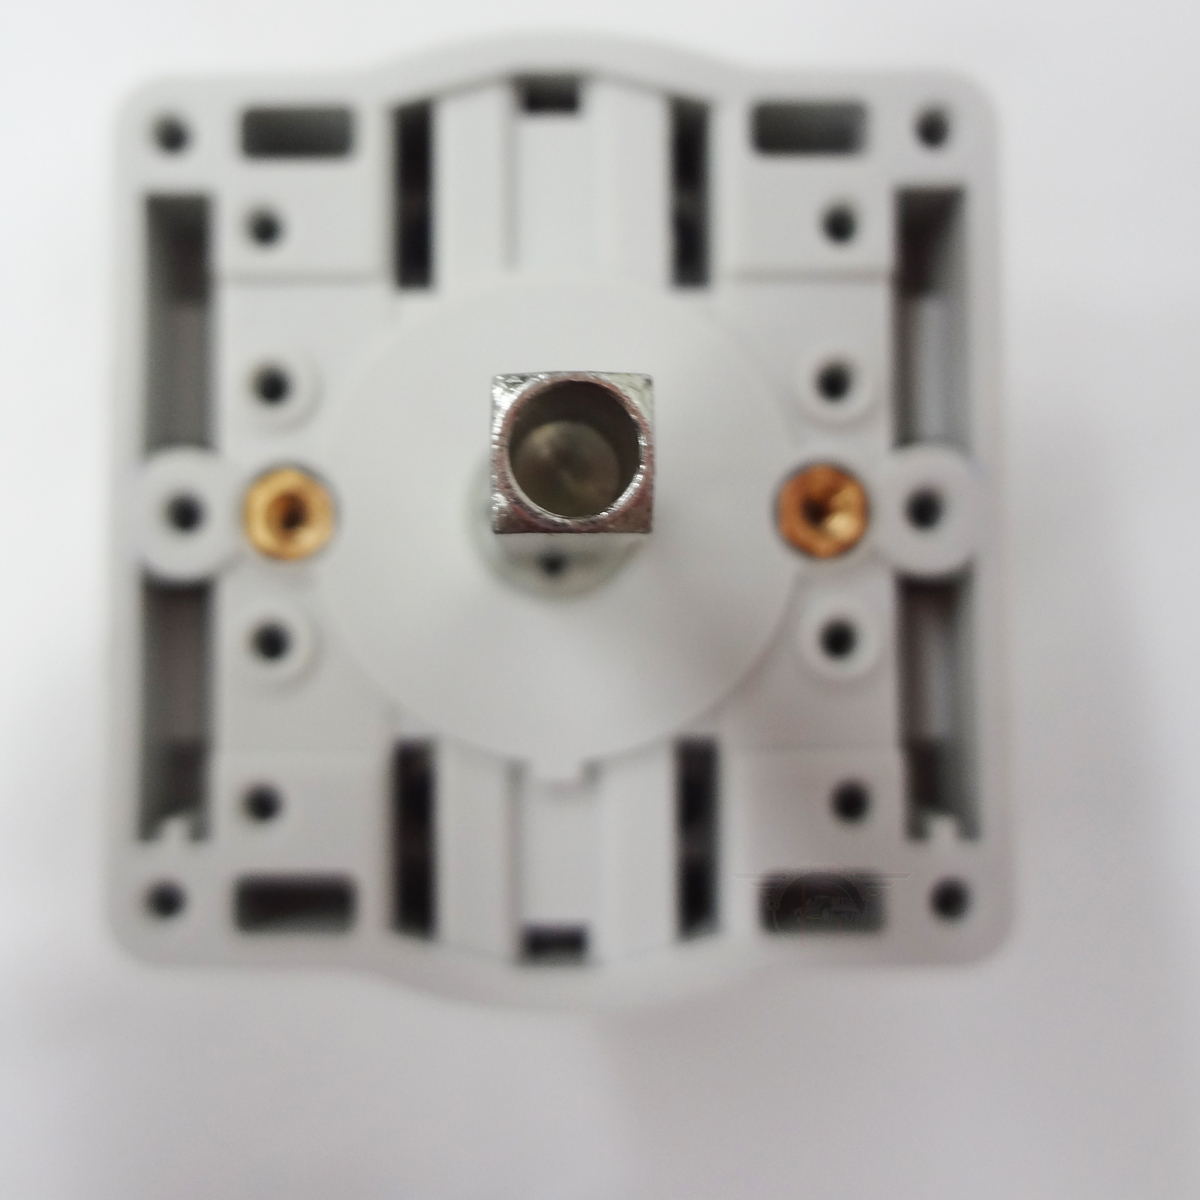 switch for tire changer accuturn 3402 3602 4402 5402 5602 accuturn tire changer forward reversing switch 20016433  at bayanpartner.co